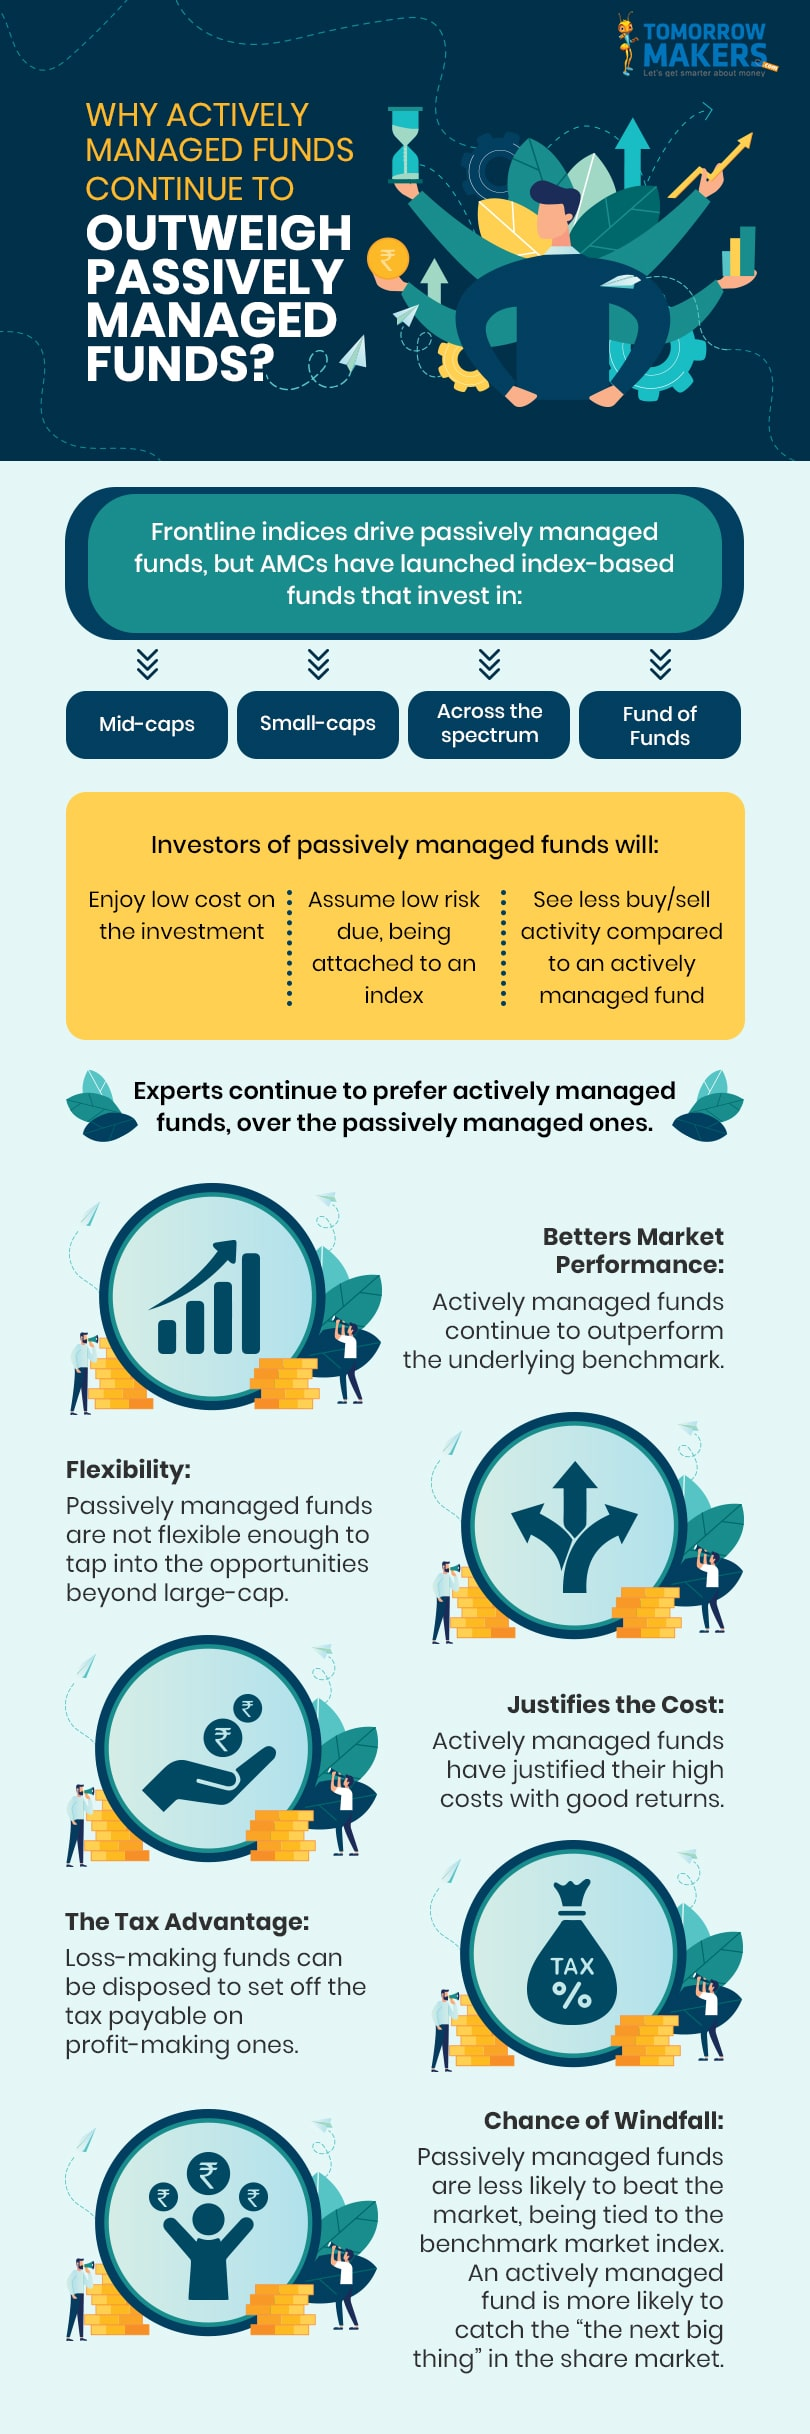 Why Actively Managed Funds Continue to Outweigh Passively Managed Funds?